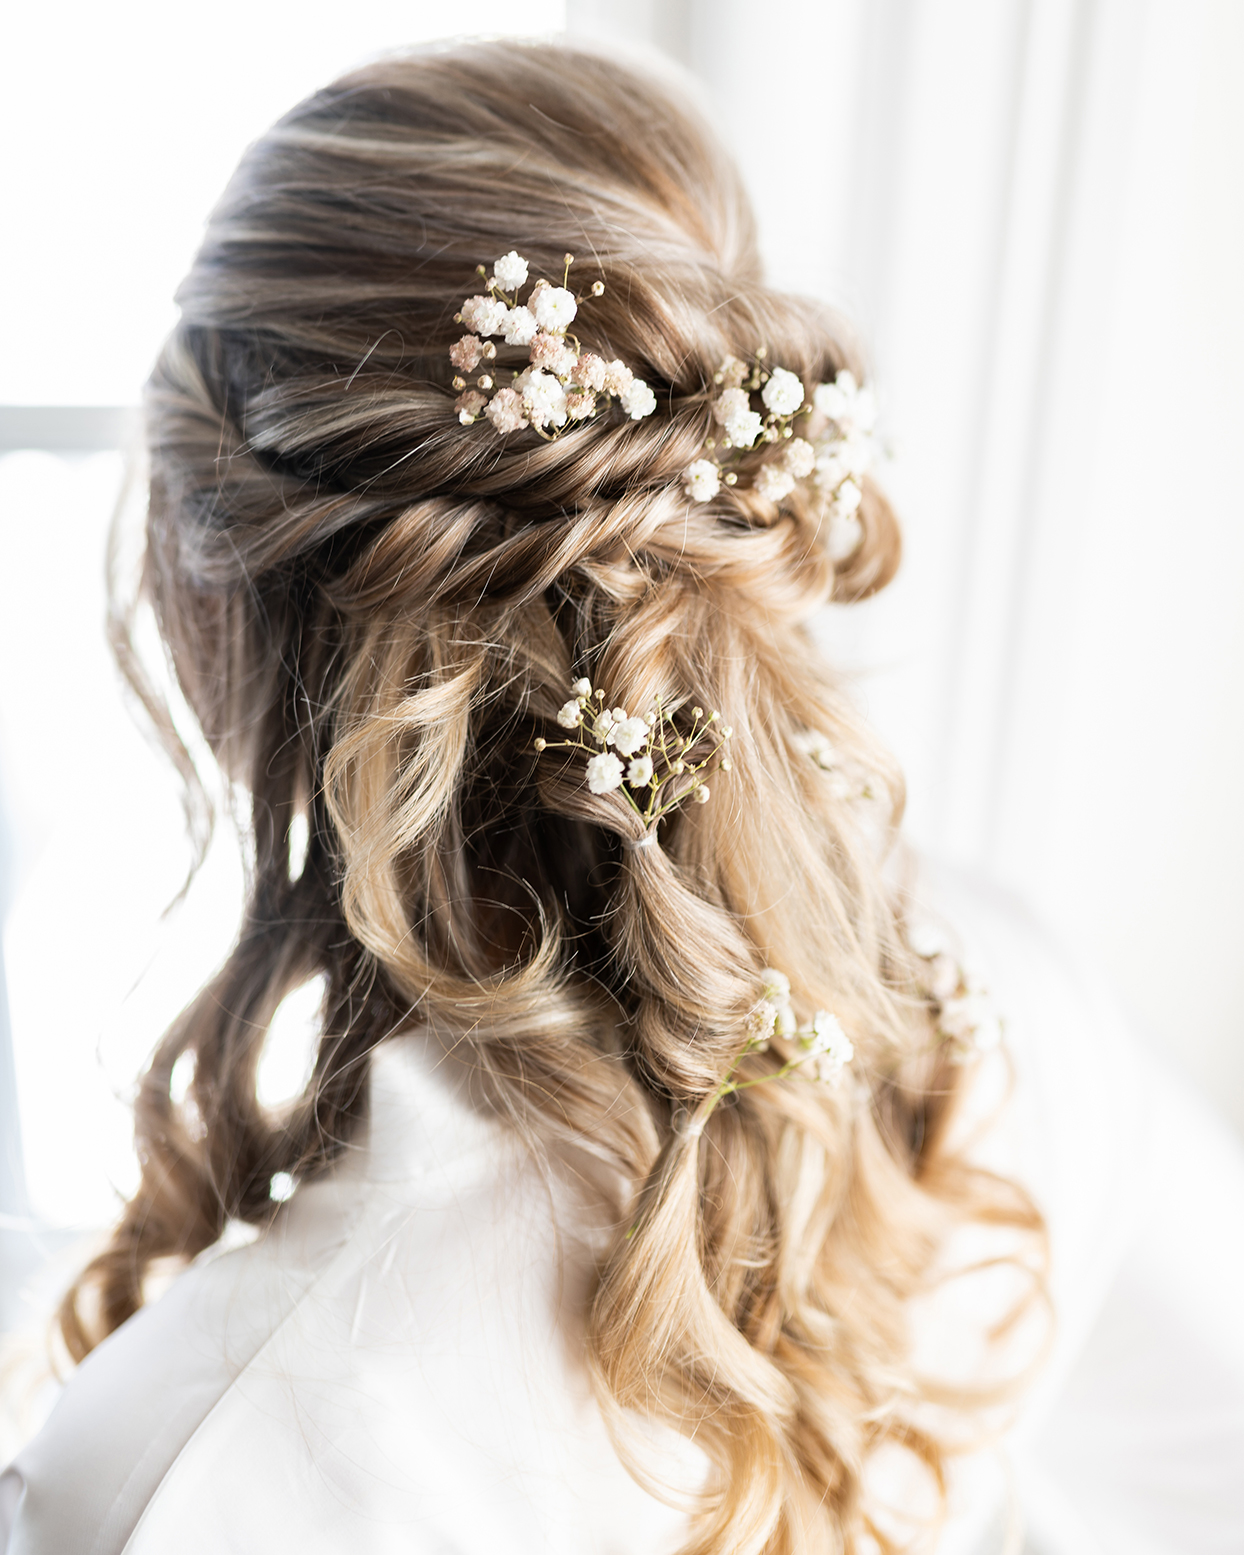 bride's wavy hair with white floral decorations